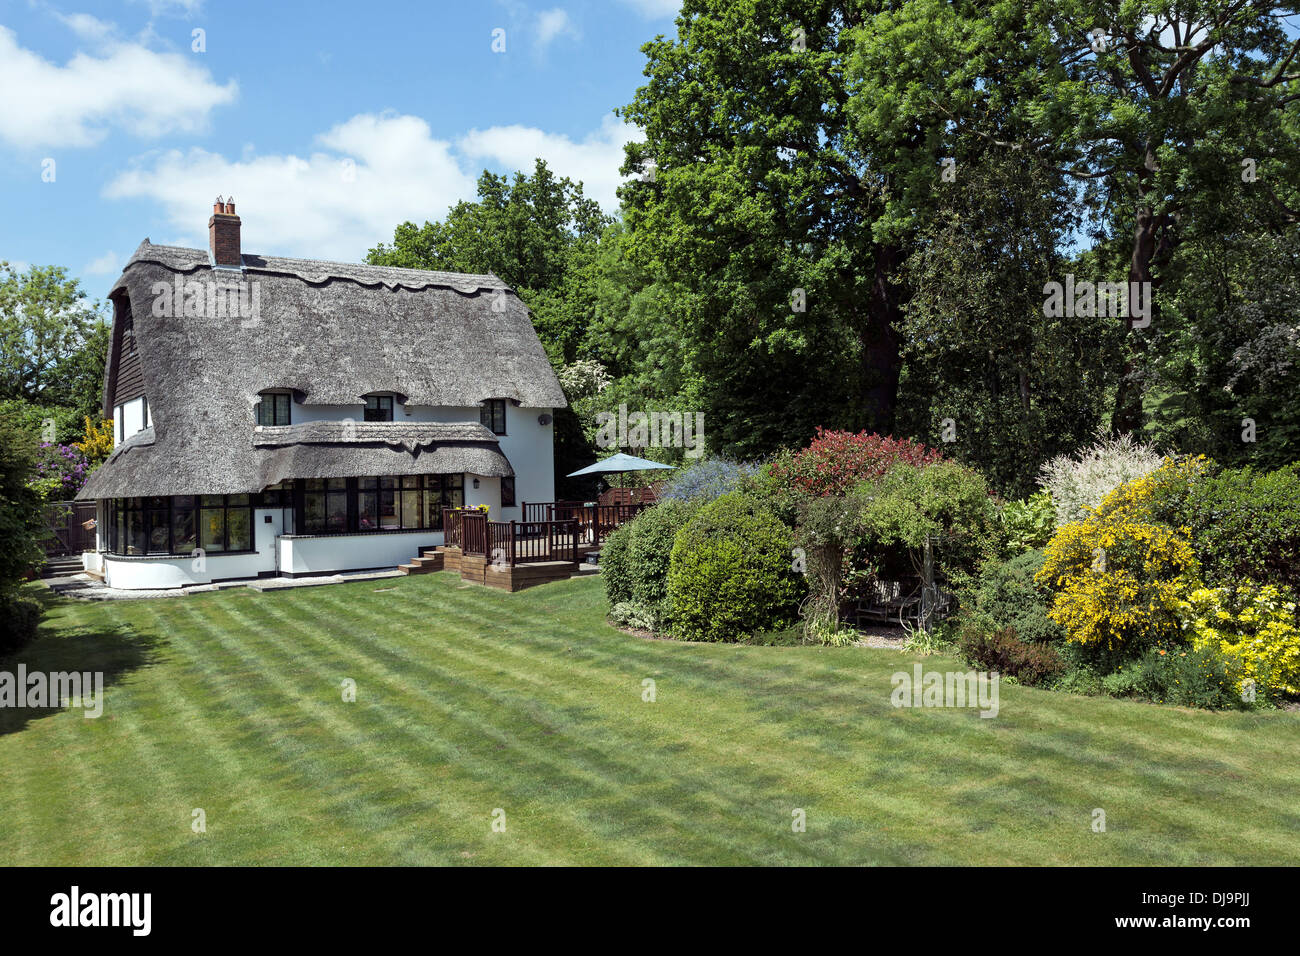 Thatched roof cottage - Stock Image